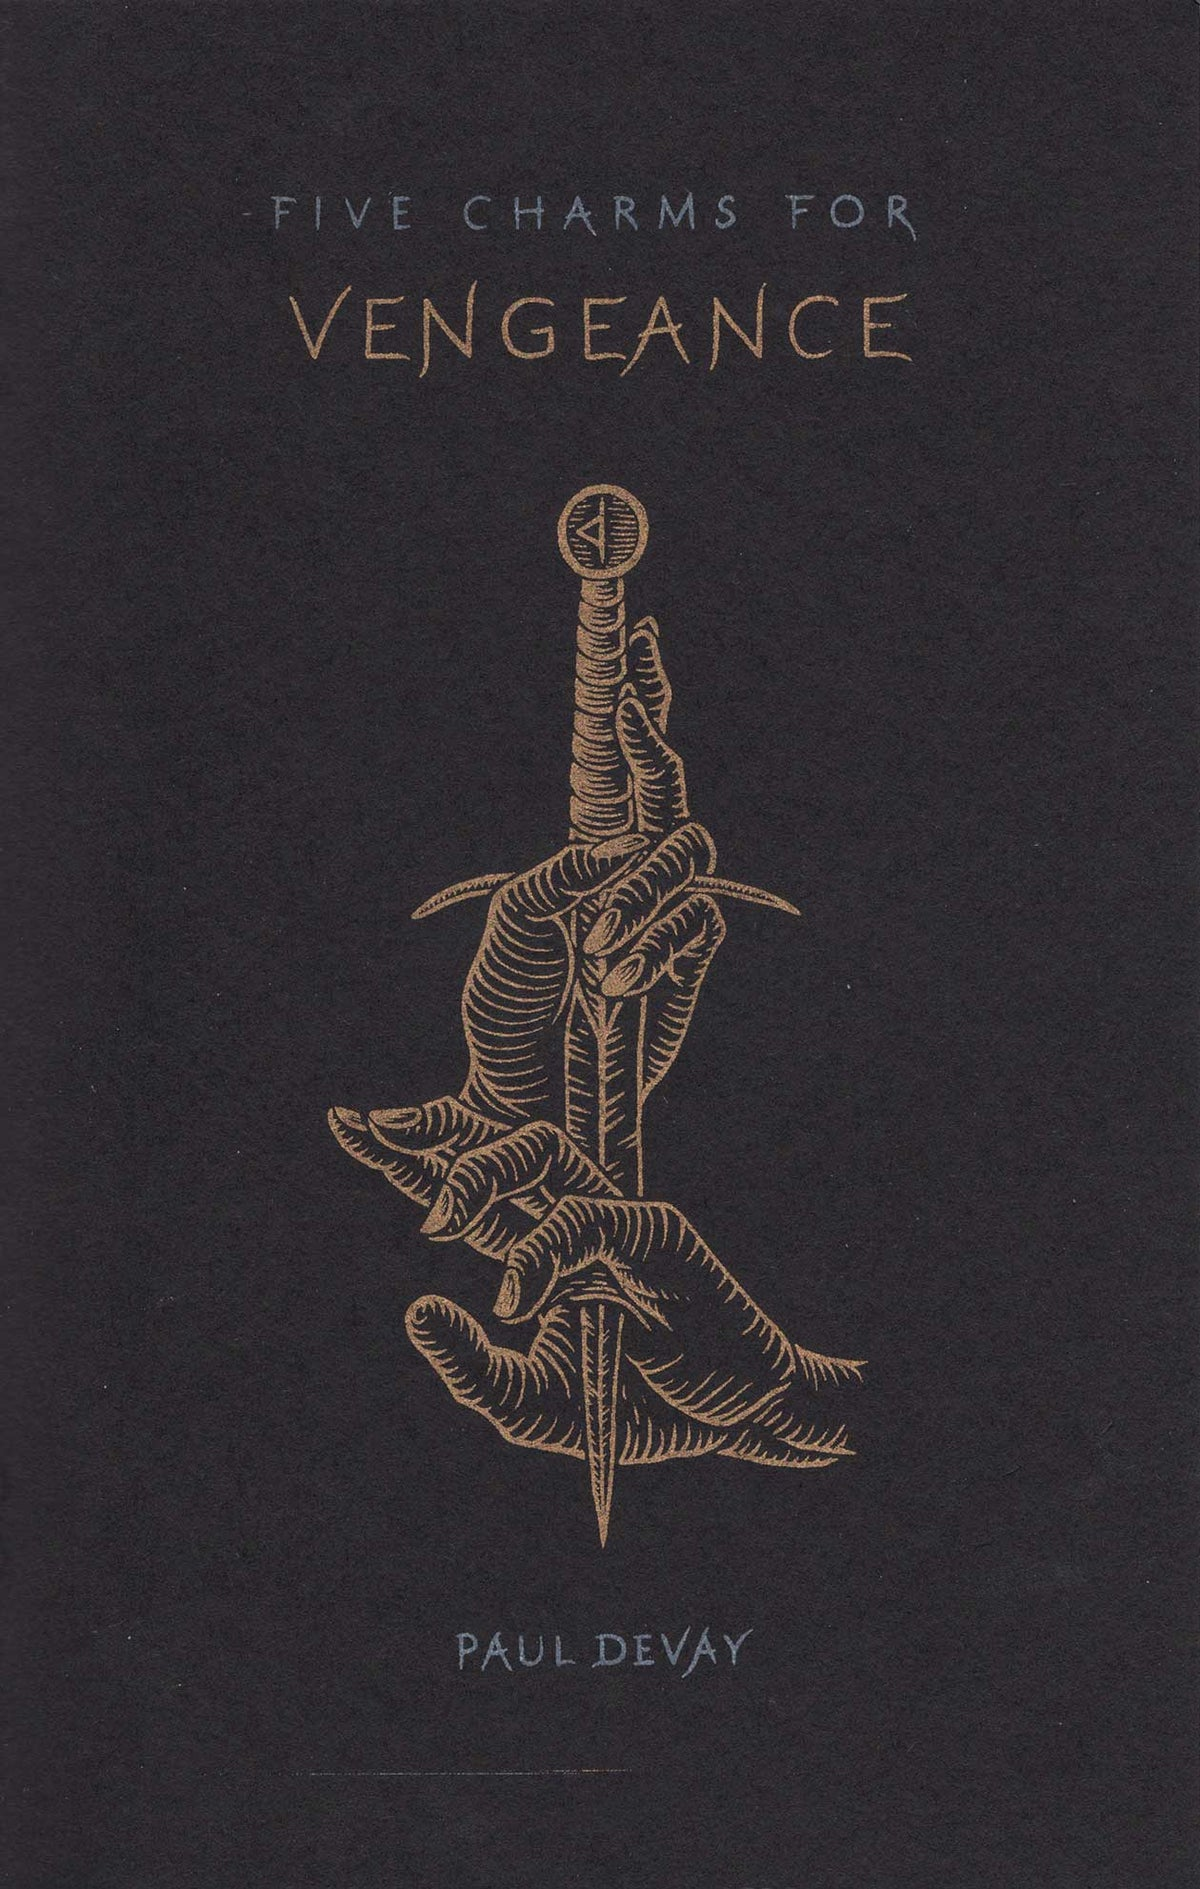 Image of Five Charms for Vengeance